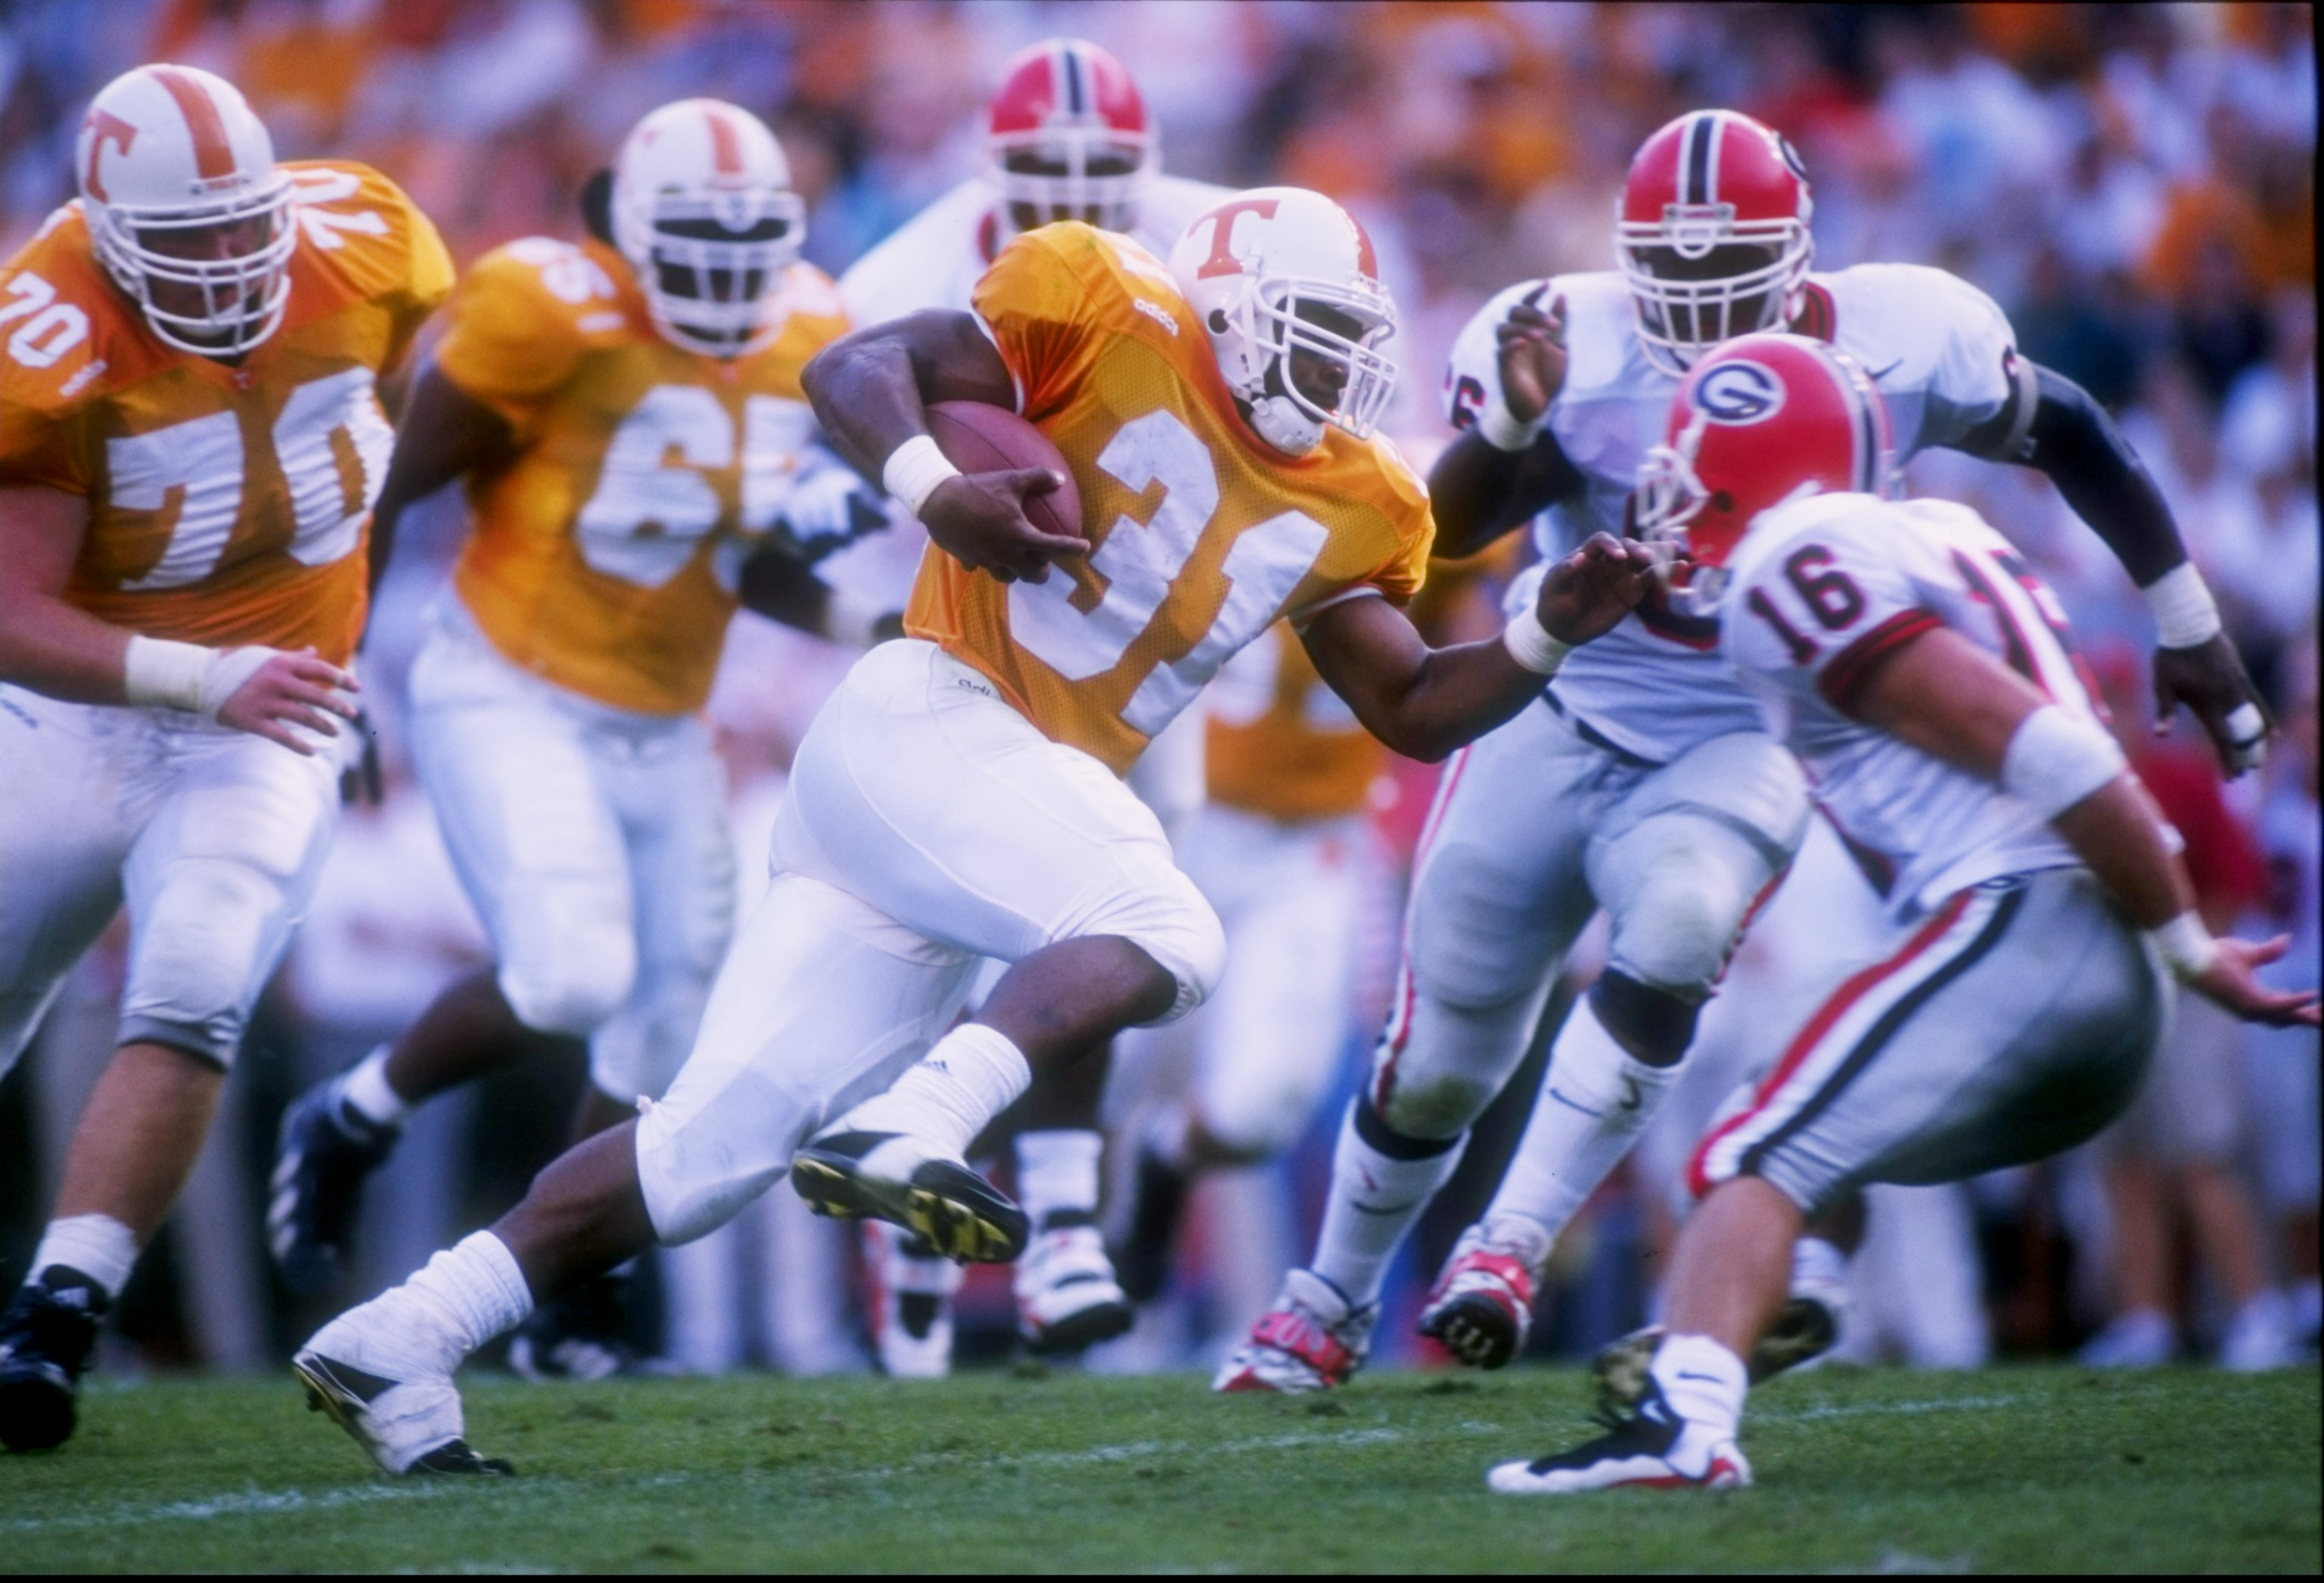 11 Oct 1997 Jamal Lewis Of The Tennessee Volunteers Runs With Ball During A